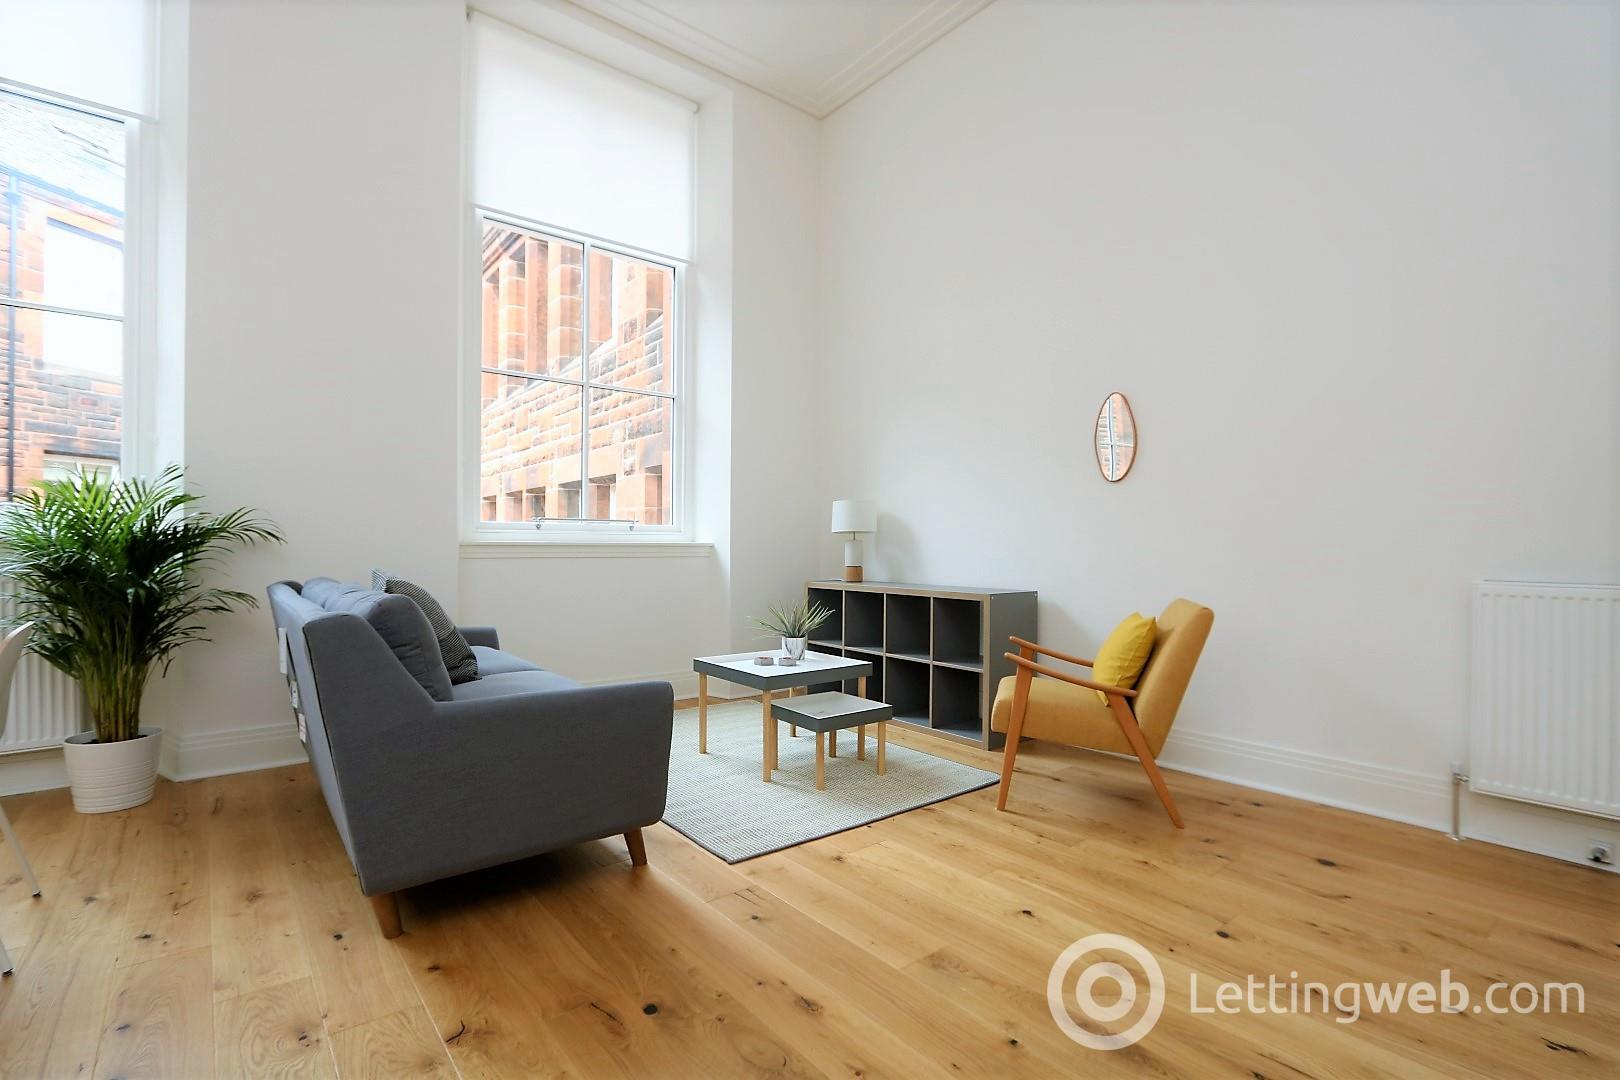 Property to rent in Victoria Crescent Road, G12 9JL